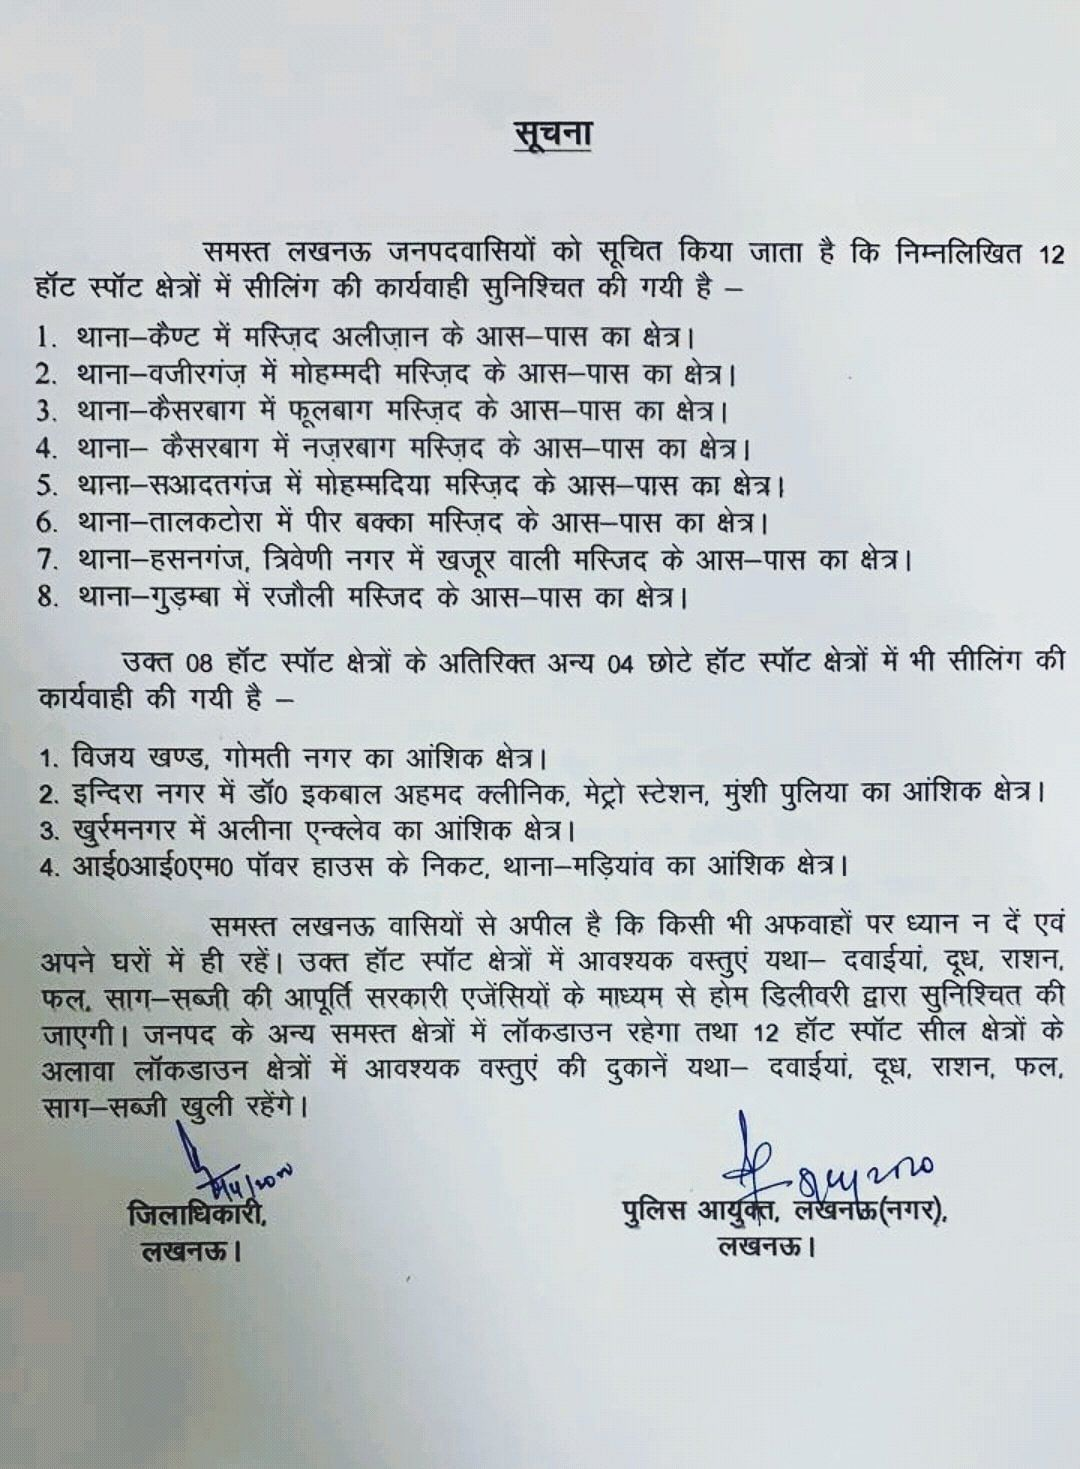 Letter from the office of Lucknow DM about hotspots in the city.